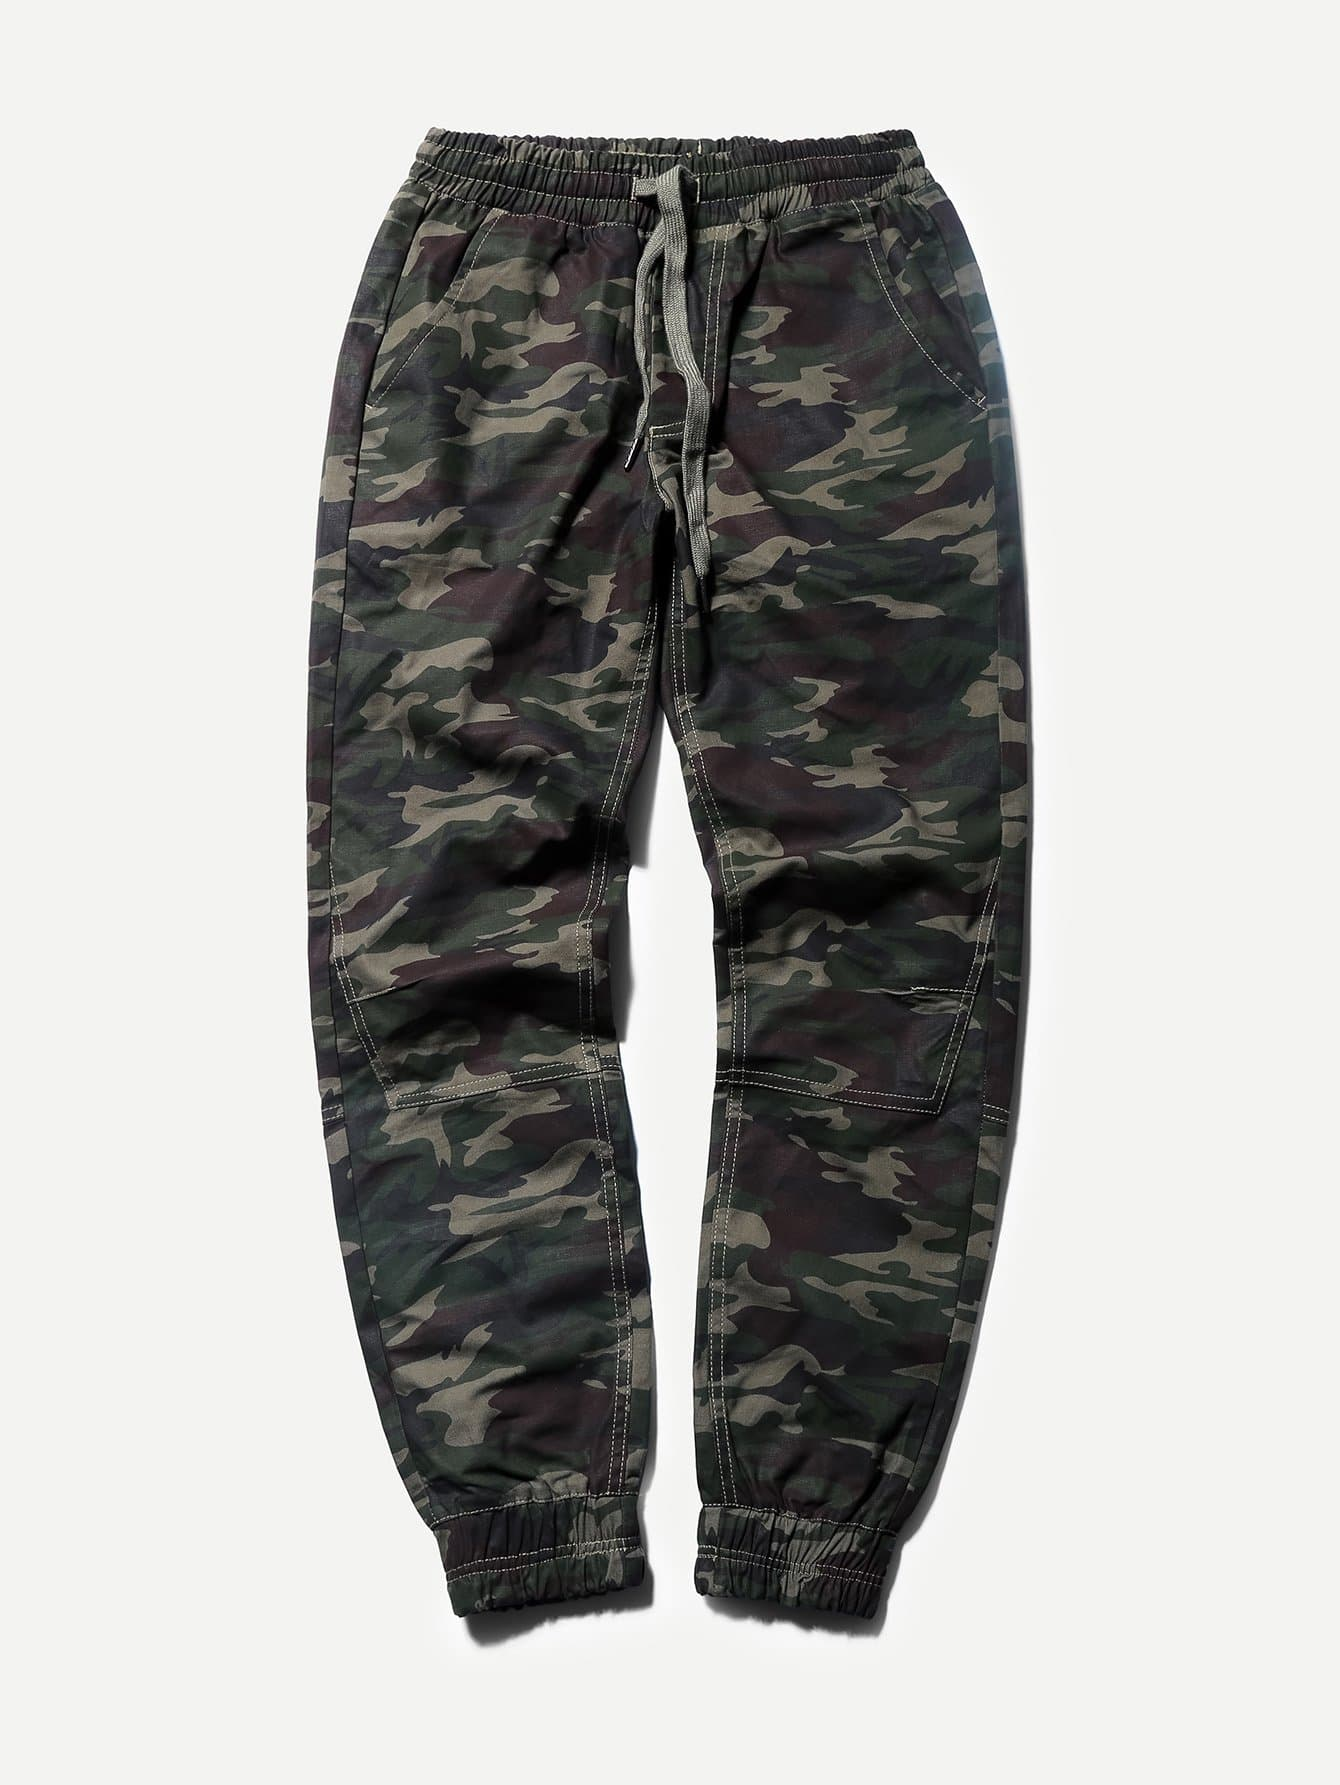 Men Drawstring Waist Camo Pants idopy men s street style denim pants camouflage camo joggers stretchy drawstring biker cargo pants for hipster